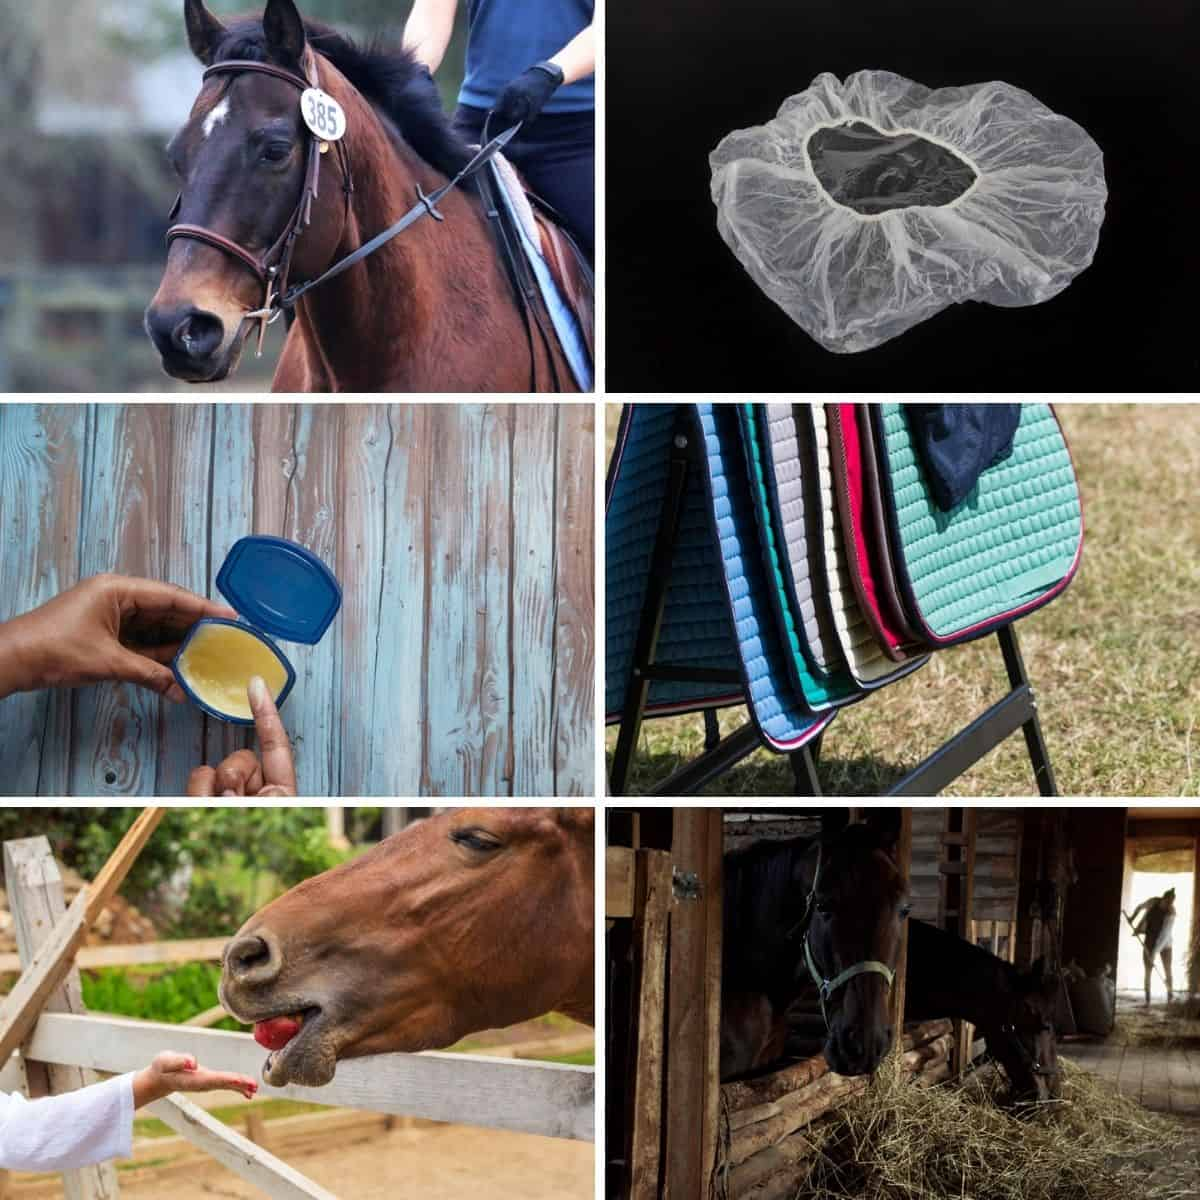 Collage photo featuring some of the horse caring tips from the post.